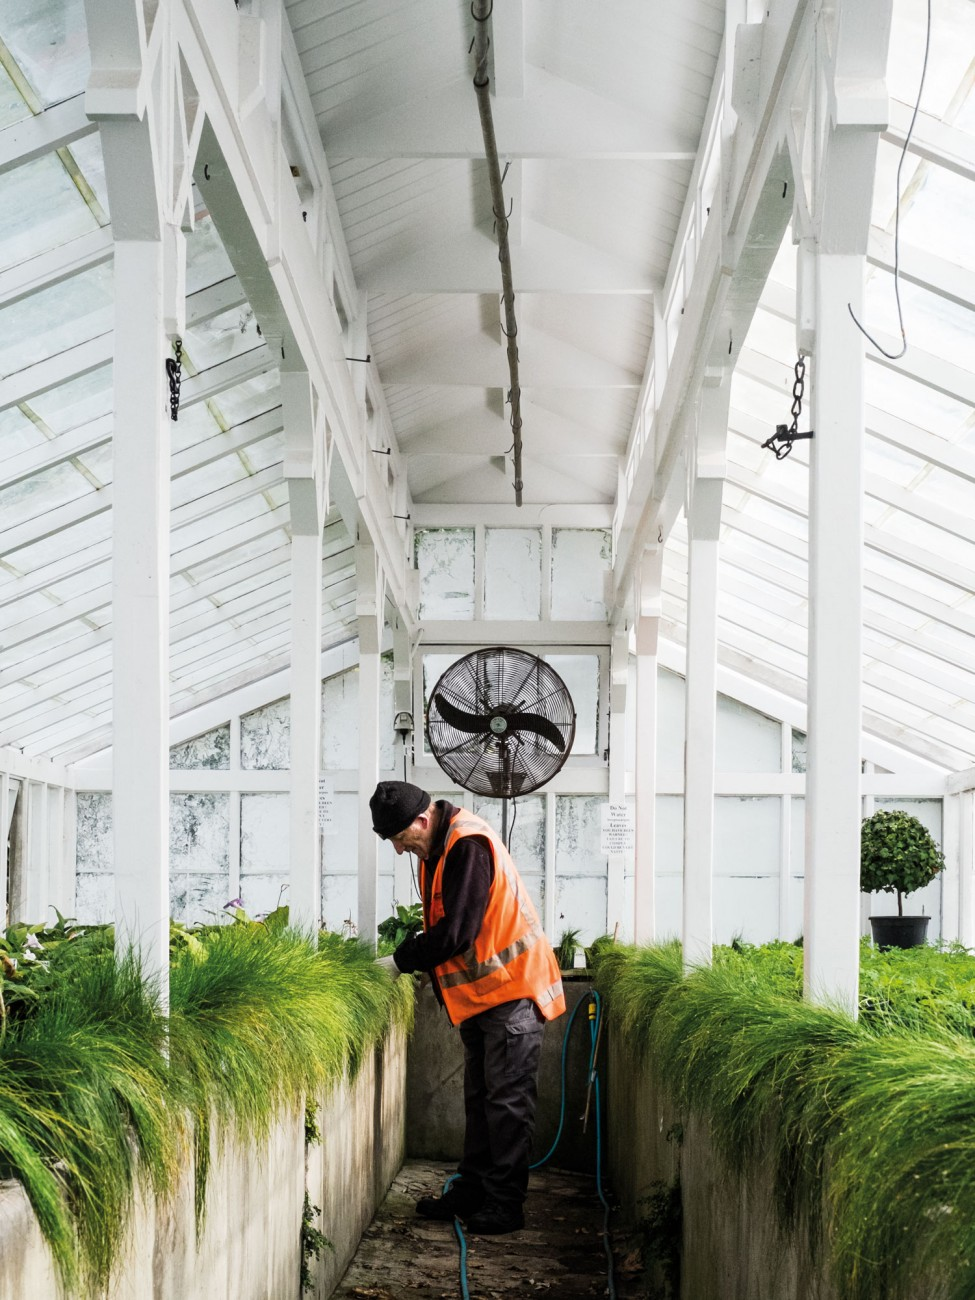 Nearby, horticulturalist Colin Bradshaw—who has worked in the Domain nursery for 47 years— tends plants in one of the vintage glass houses of the oldest continually operating nursery in the country.